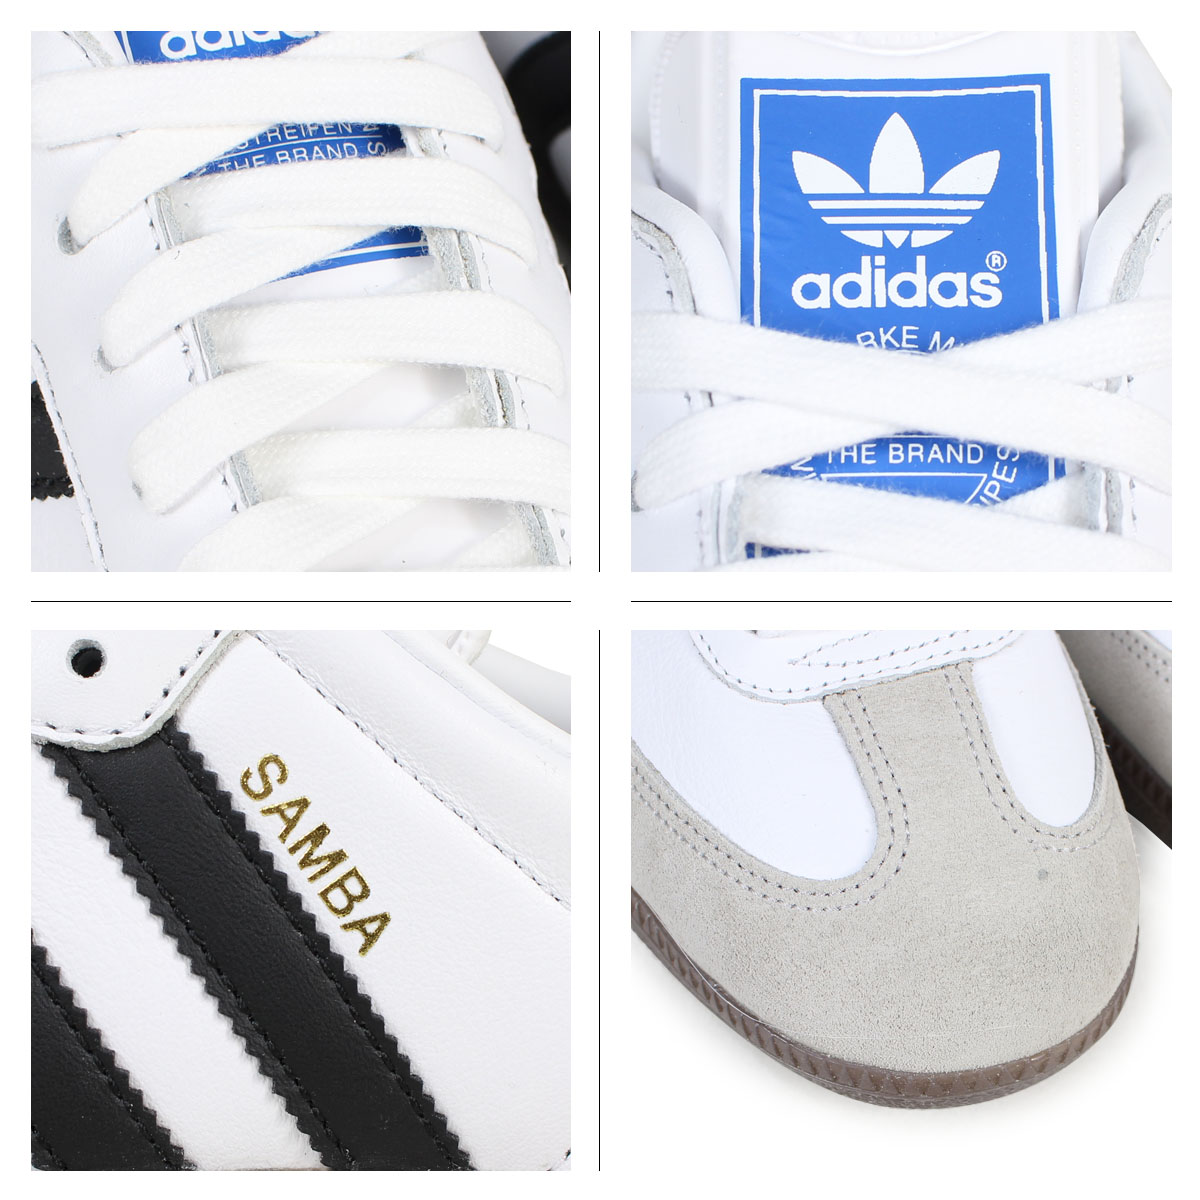 the latest 7408c dce92 adidas Originals SAMBA Adidas samba sneakers men BZ0057 white  1 30 Shinnyu  load   181